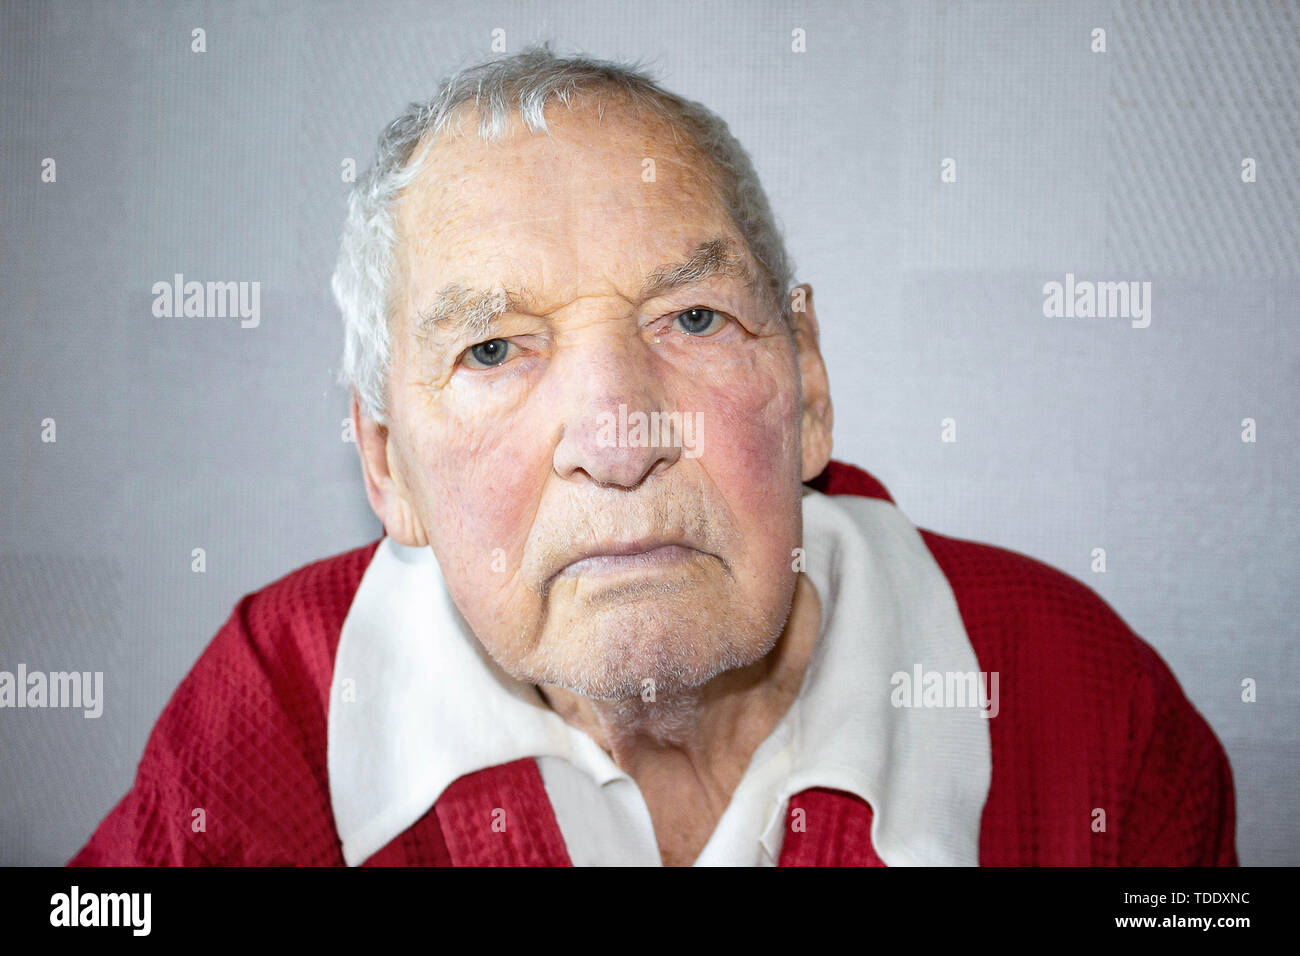 Portrait of an elderly man with face closed by hands - Stock Image